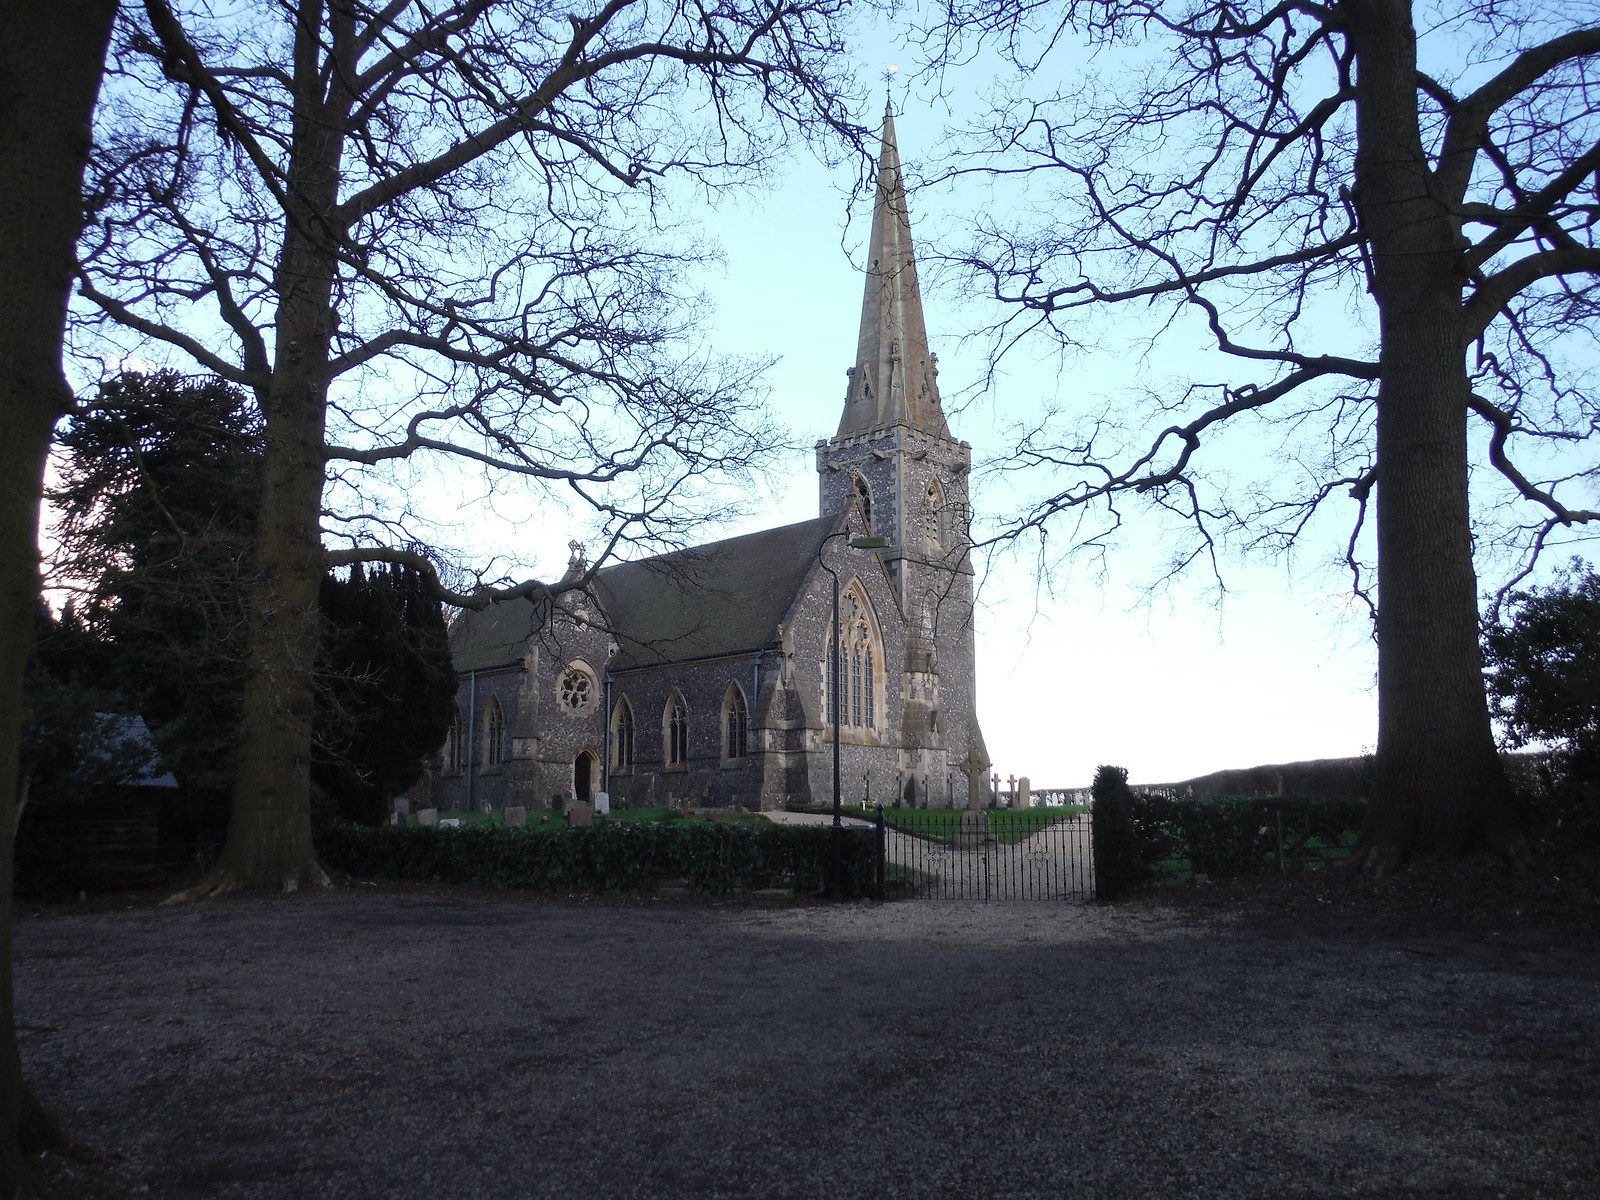 St. Matthew's, Midgham SWC Walk 117 Aldermaston to Woolhampton (via Stanford Dingley)